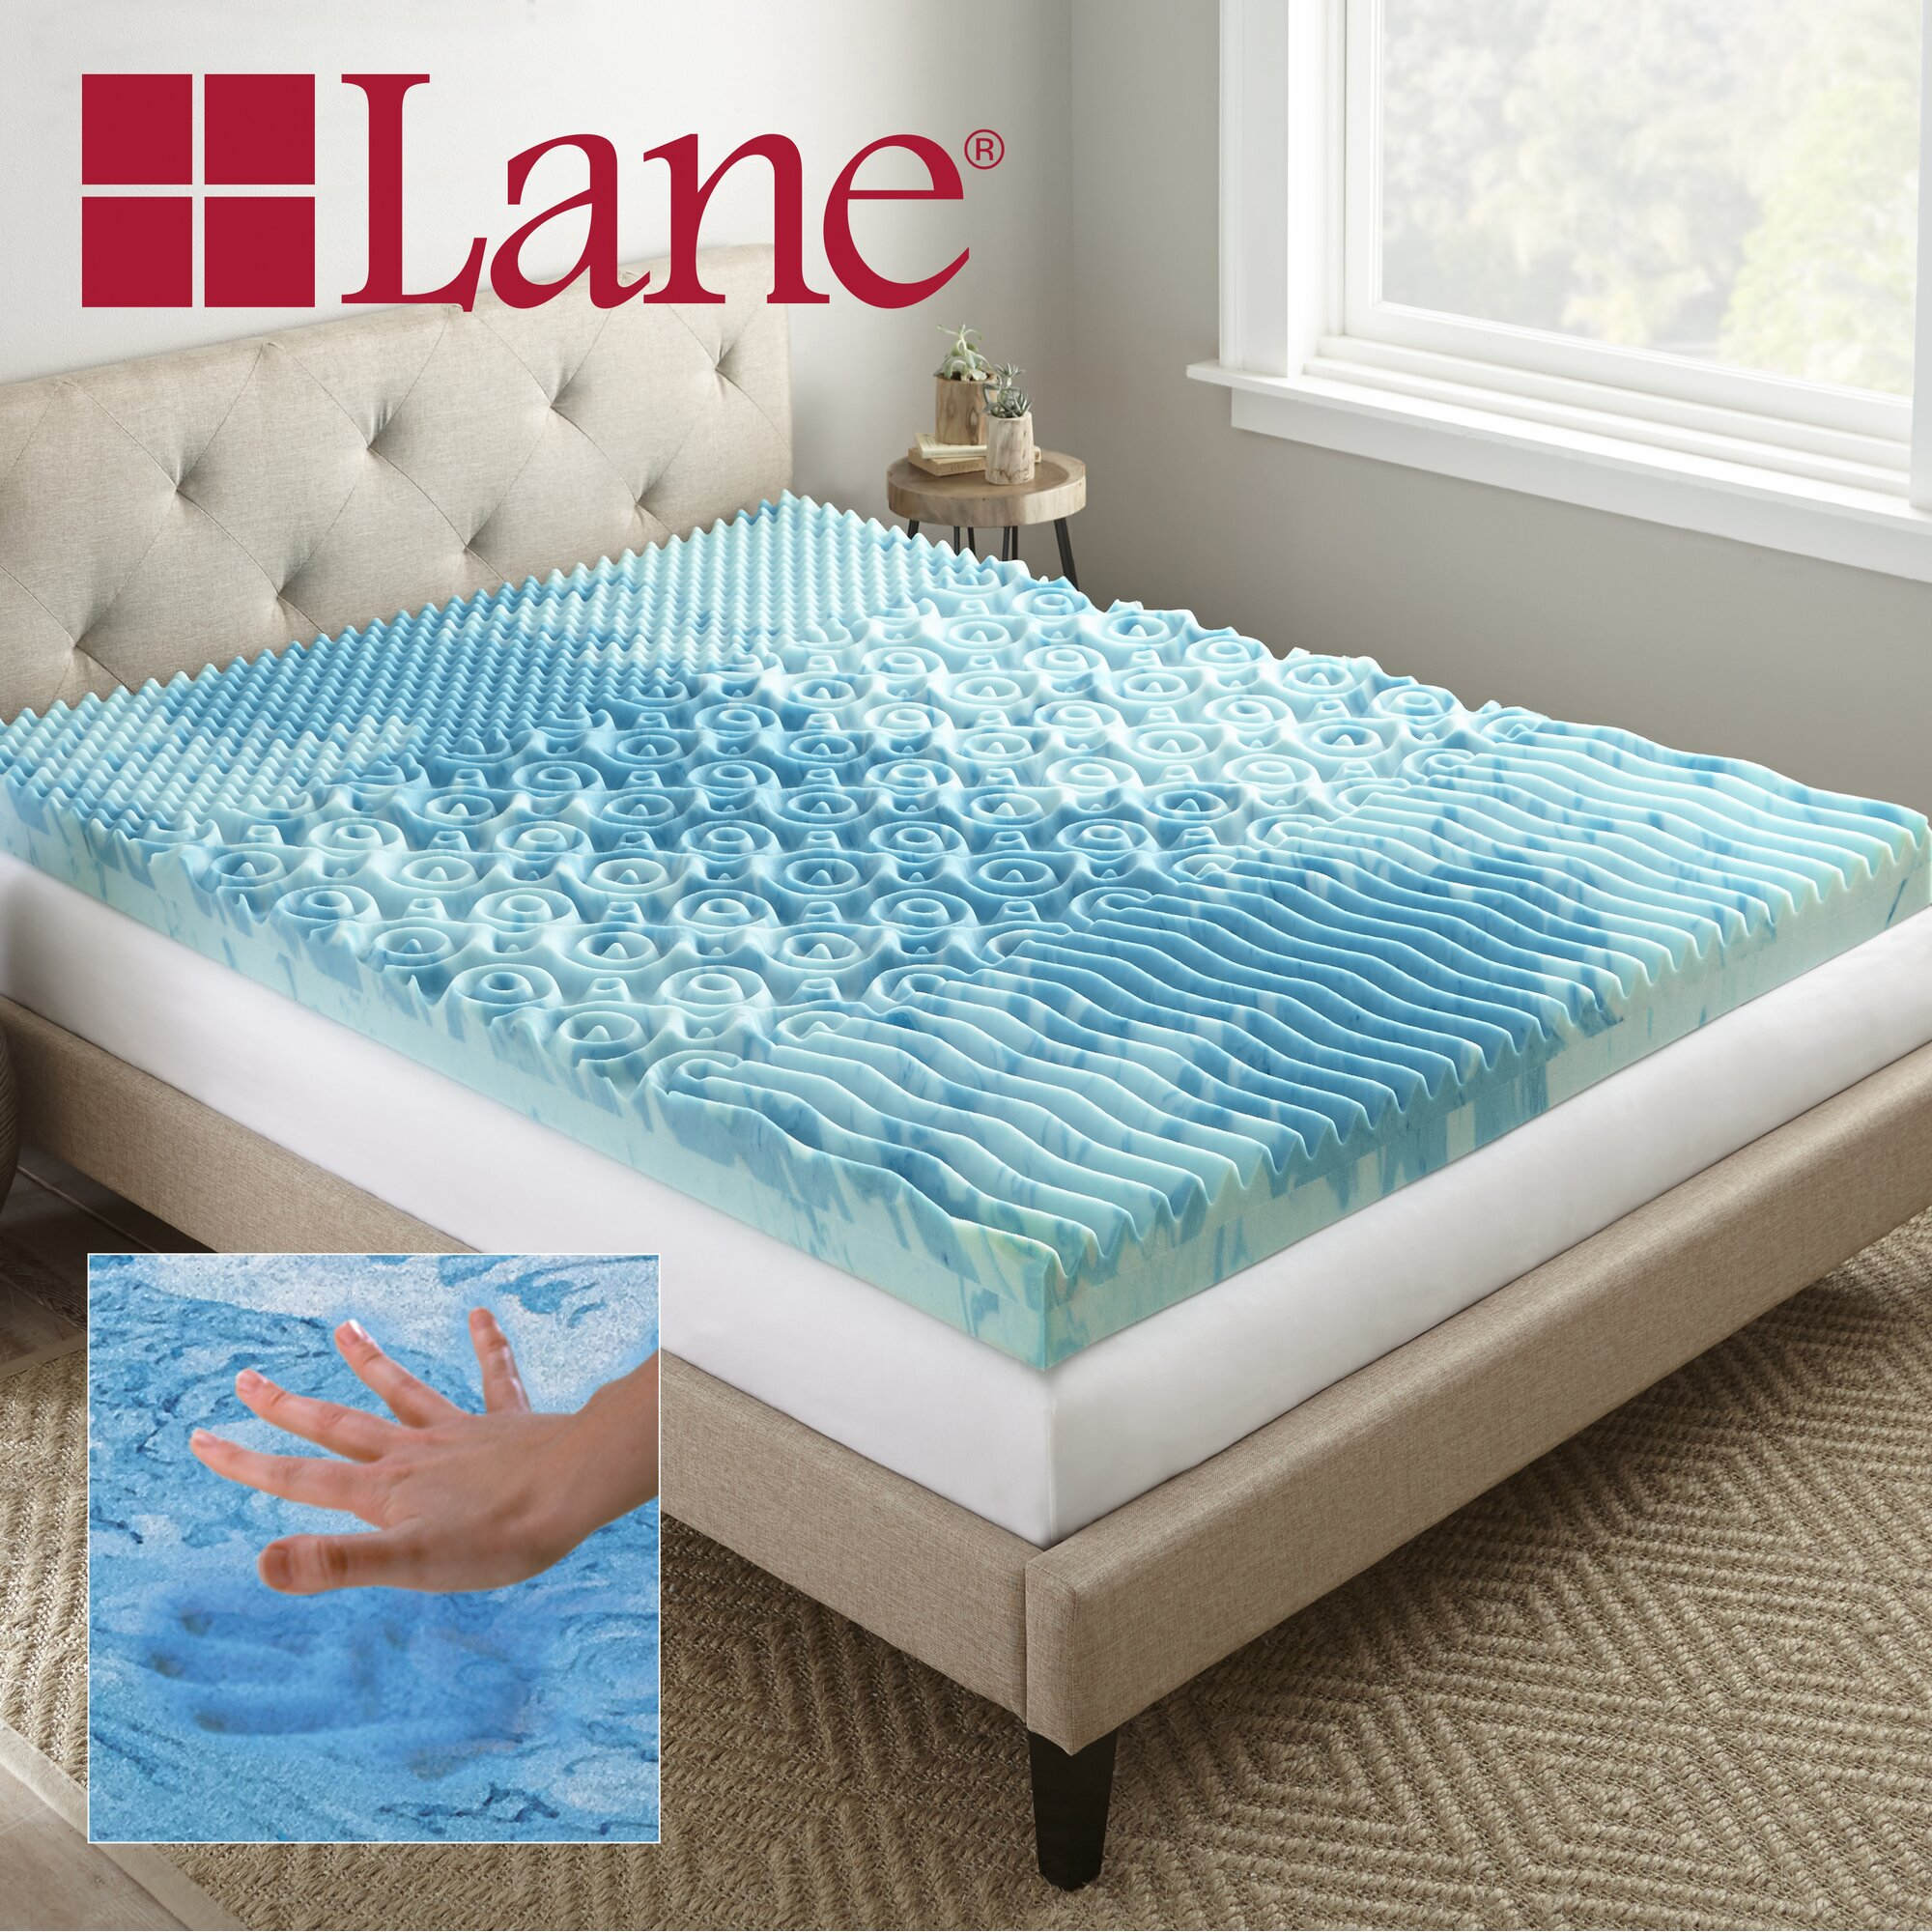 lane furniture sleep cool gellux 4 memory foam mattress topper reviews wayfair. Black Bedroom Furniture Sets. Home Design Ideas